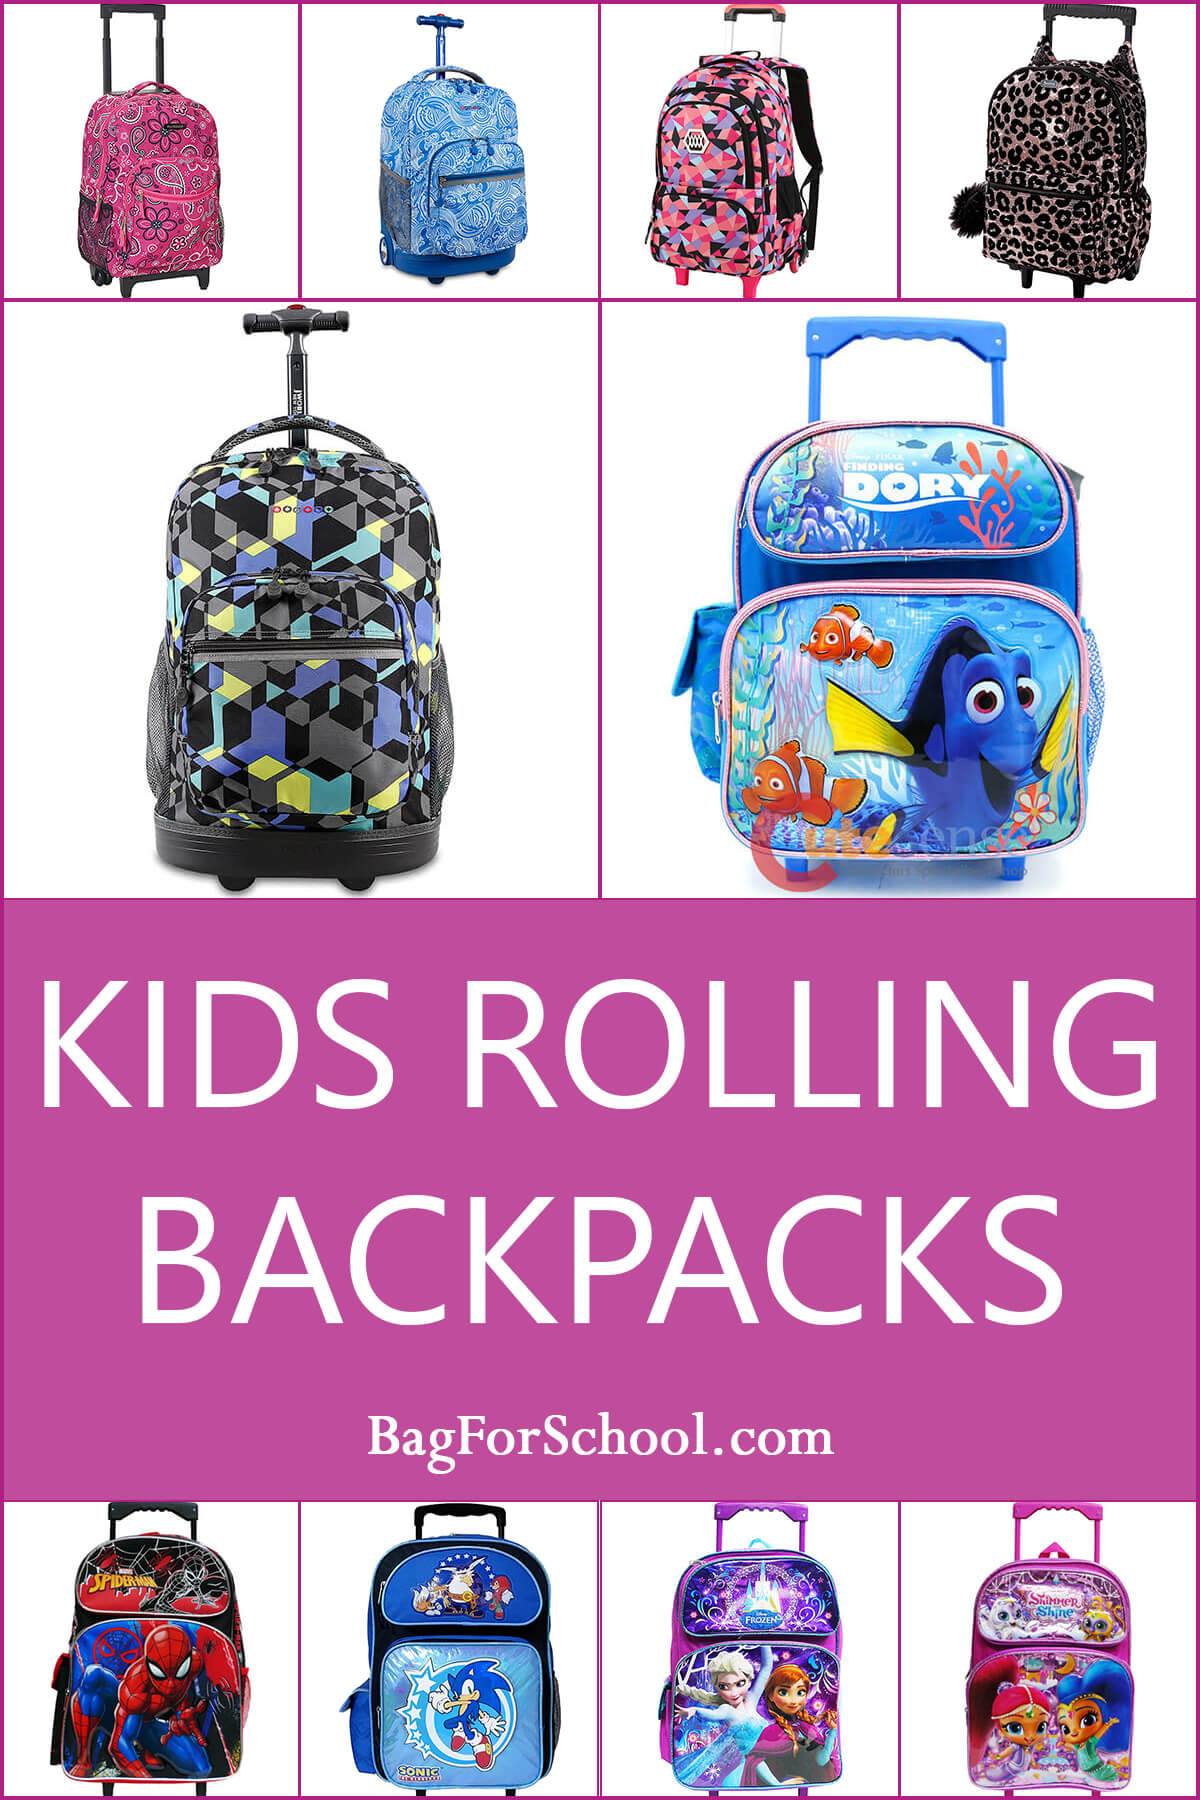 Kids Rolling Backpacks